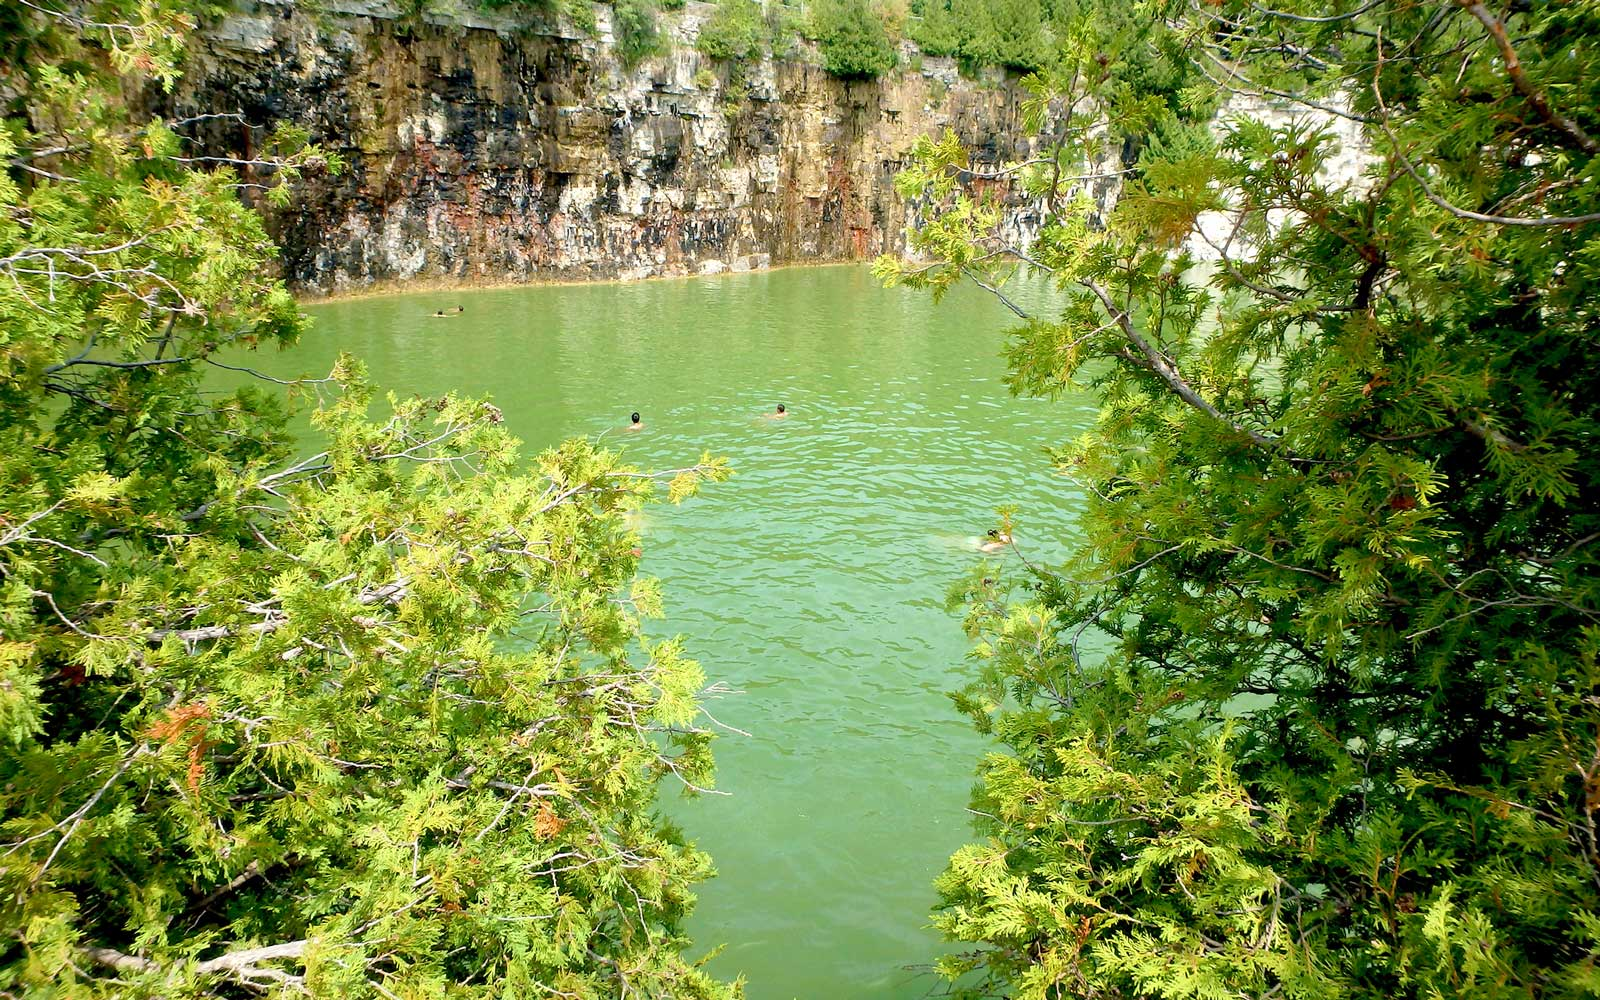 This Swimming Hole in Canada Is the Stuff of Summer Dreams